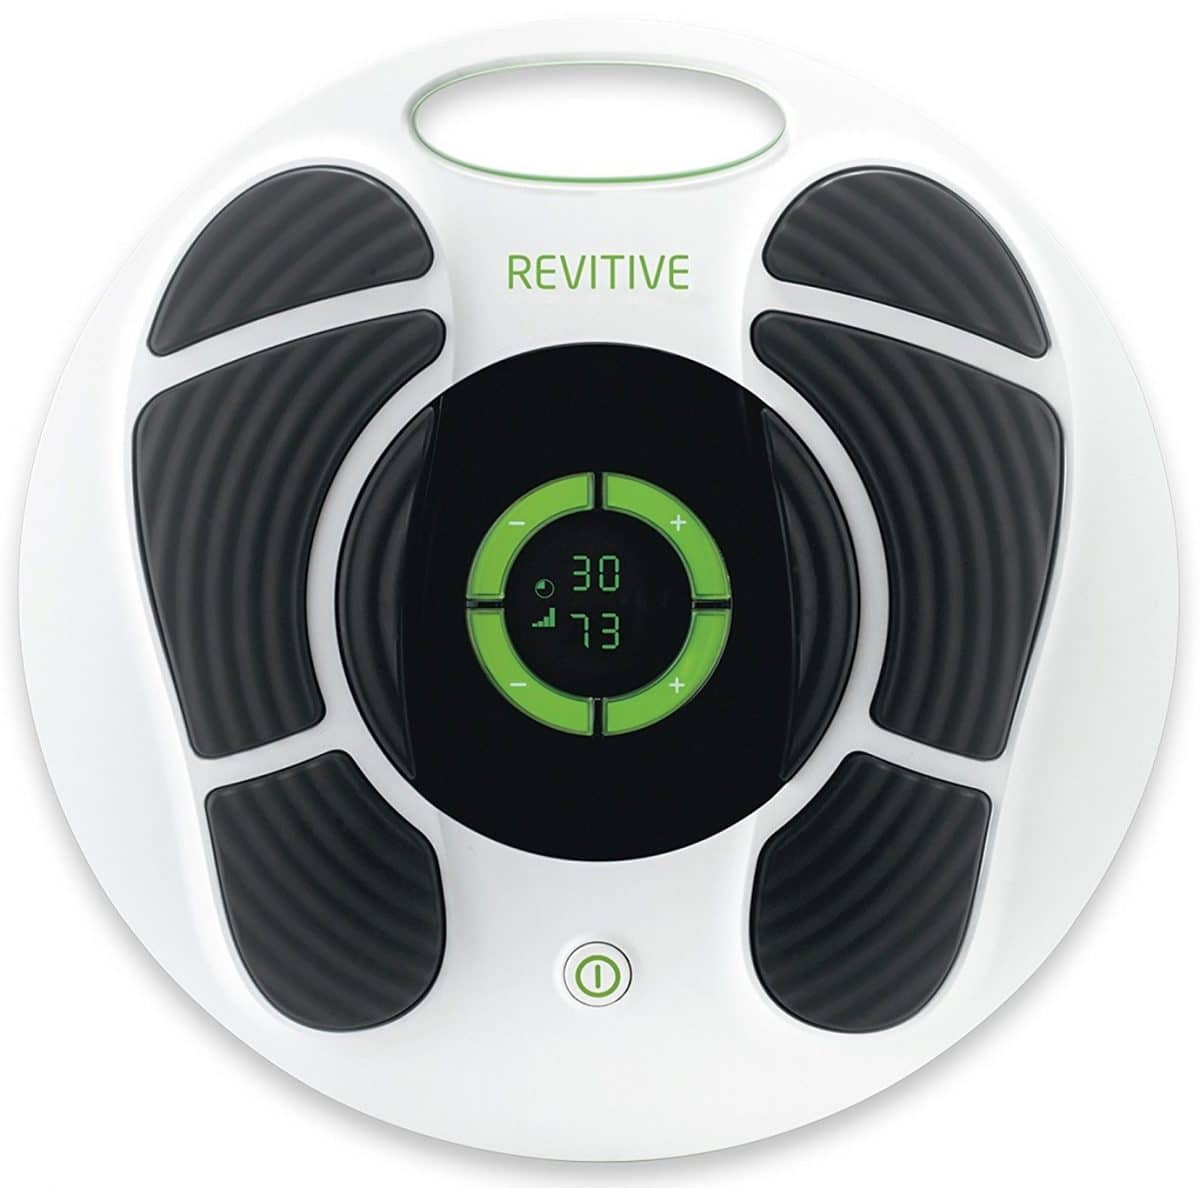 Revitive Medic Plus avis